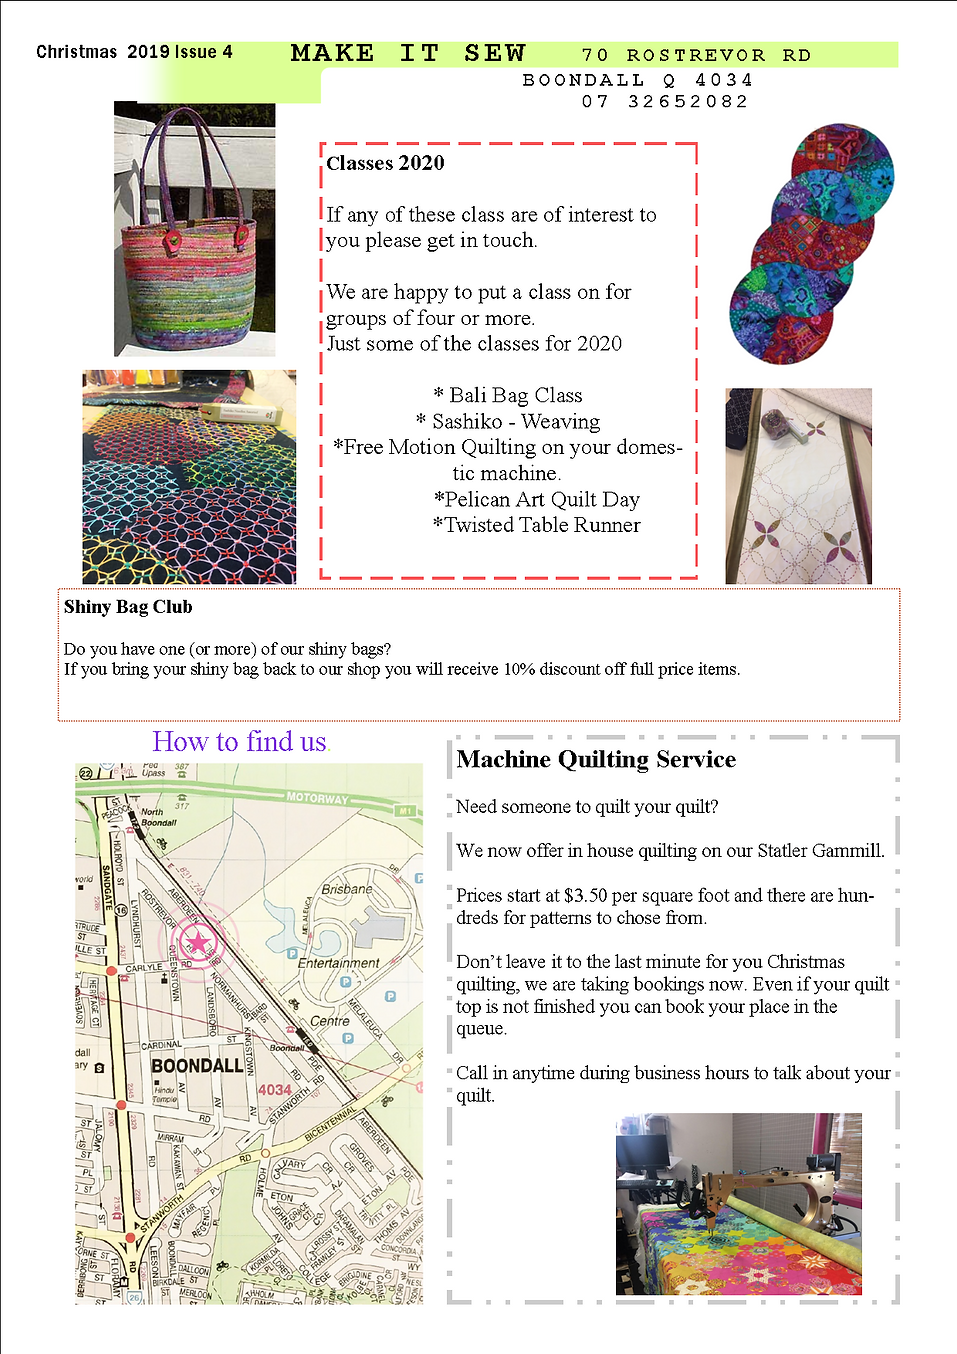 newsletter Christmas 2019 Issue 4 page 2